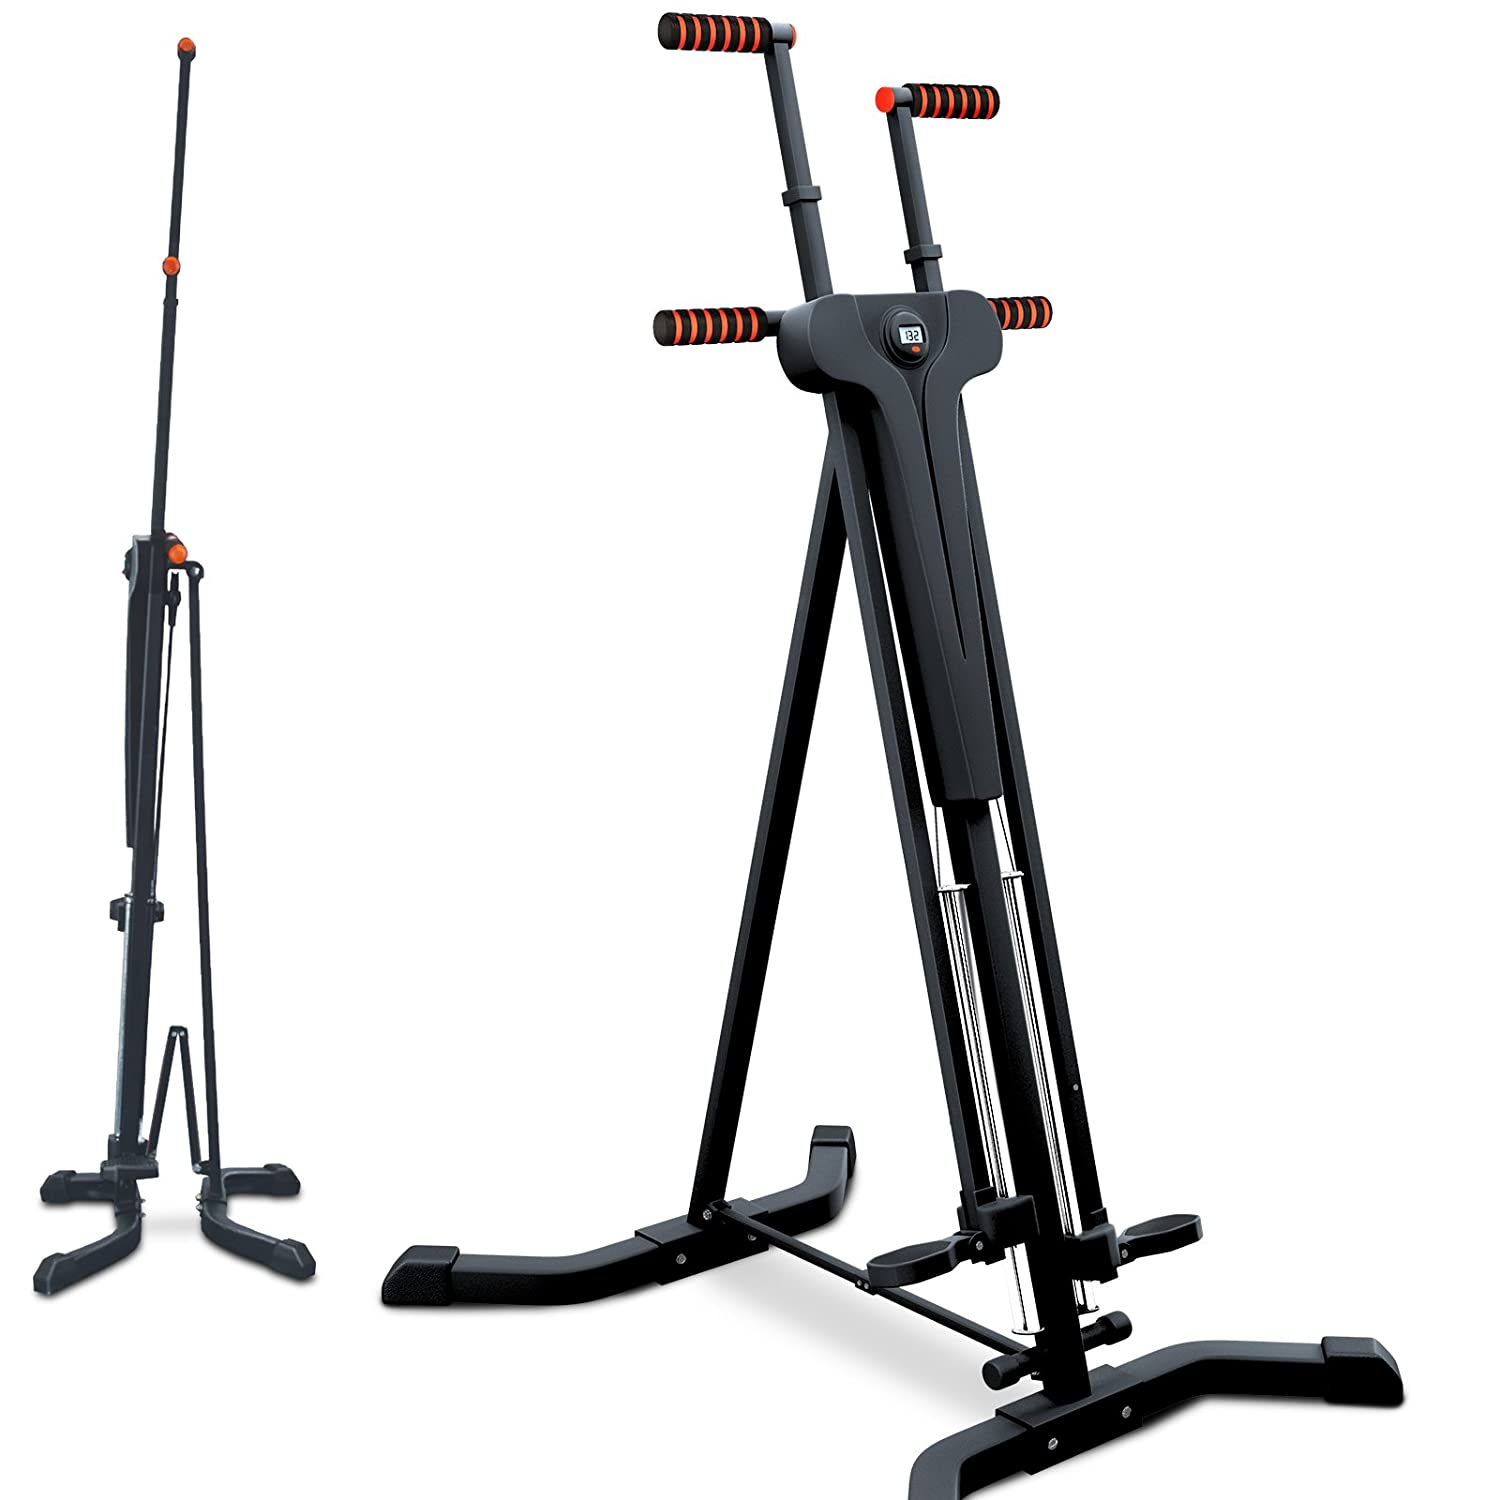 Sportstech 2-in-1 Stepper & Vertical Climber